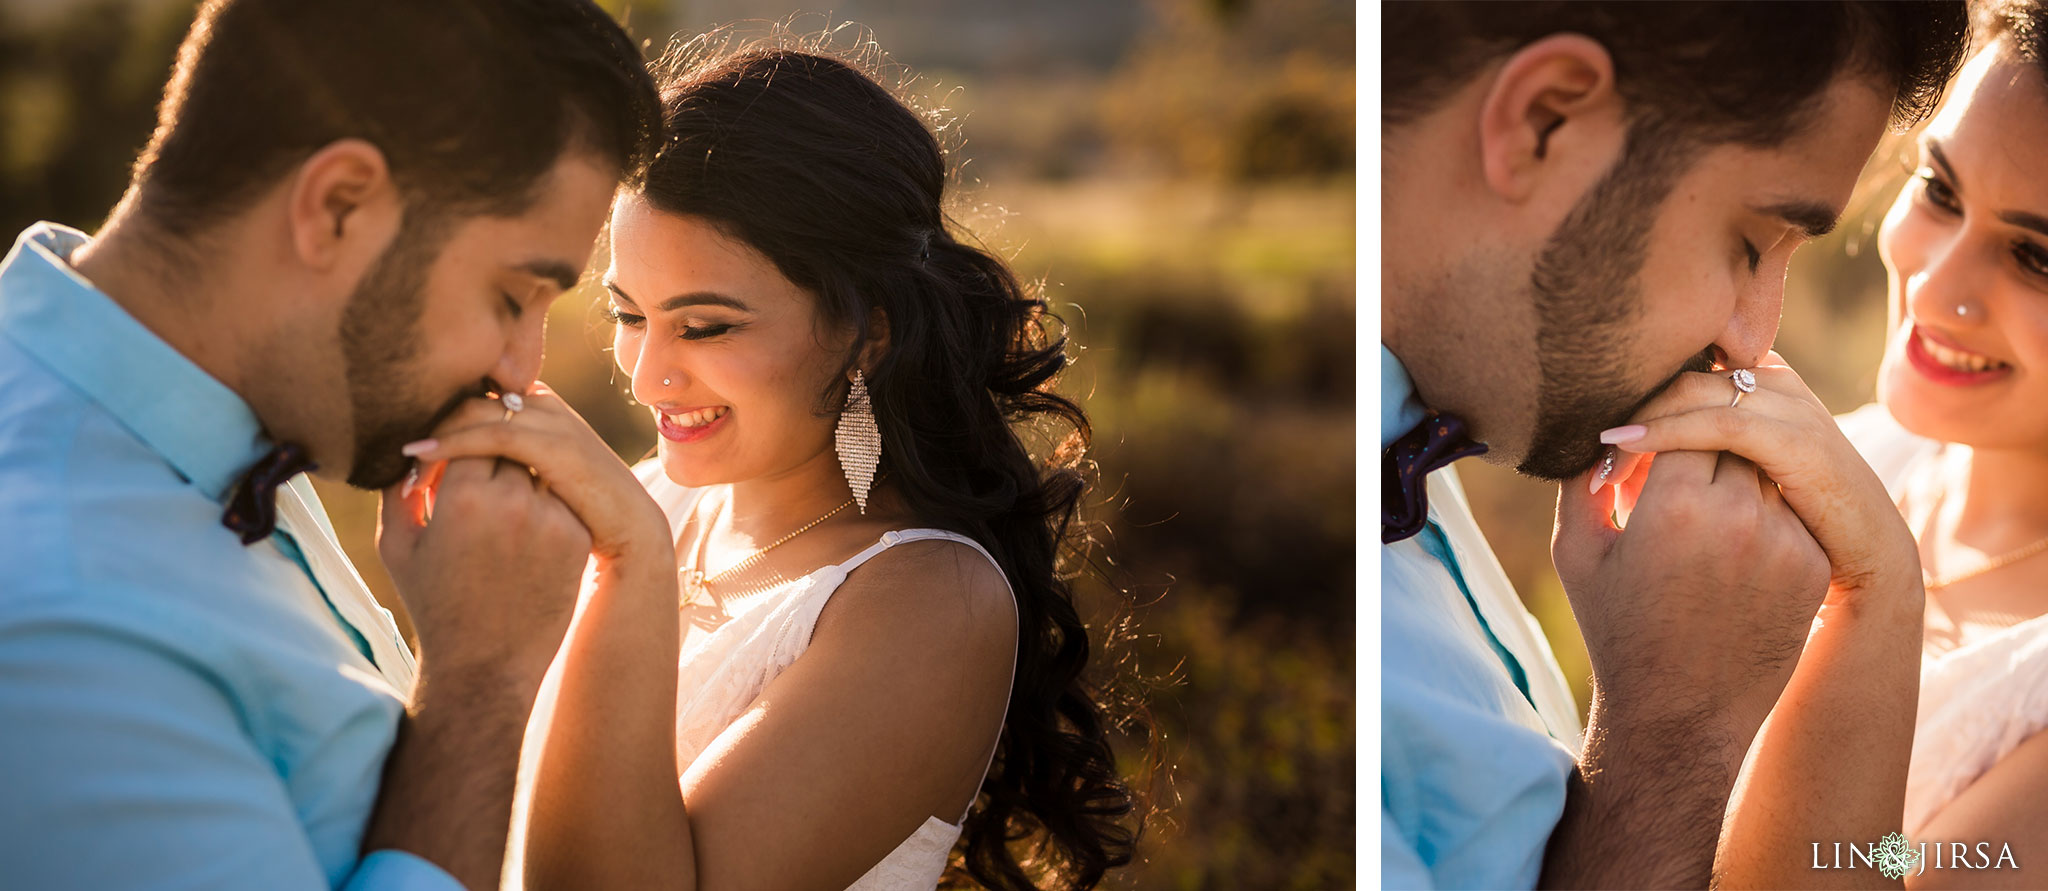 11 james dilley preserve orange county engagement photography